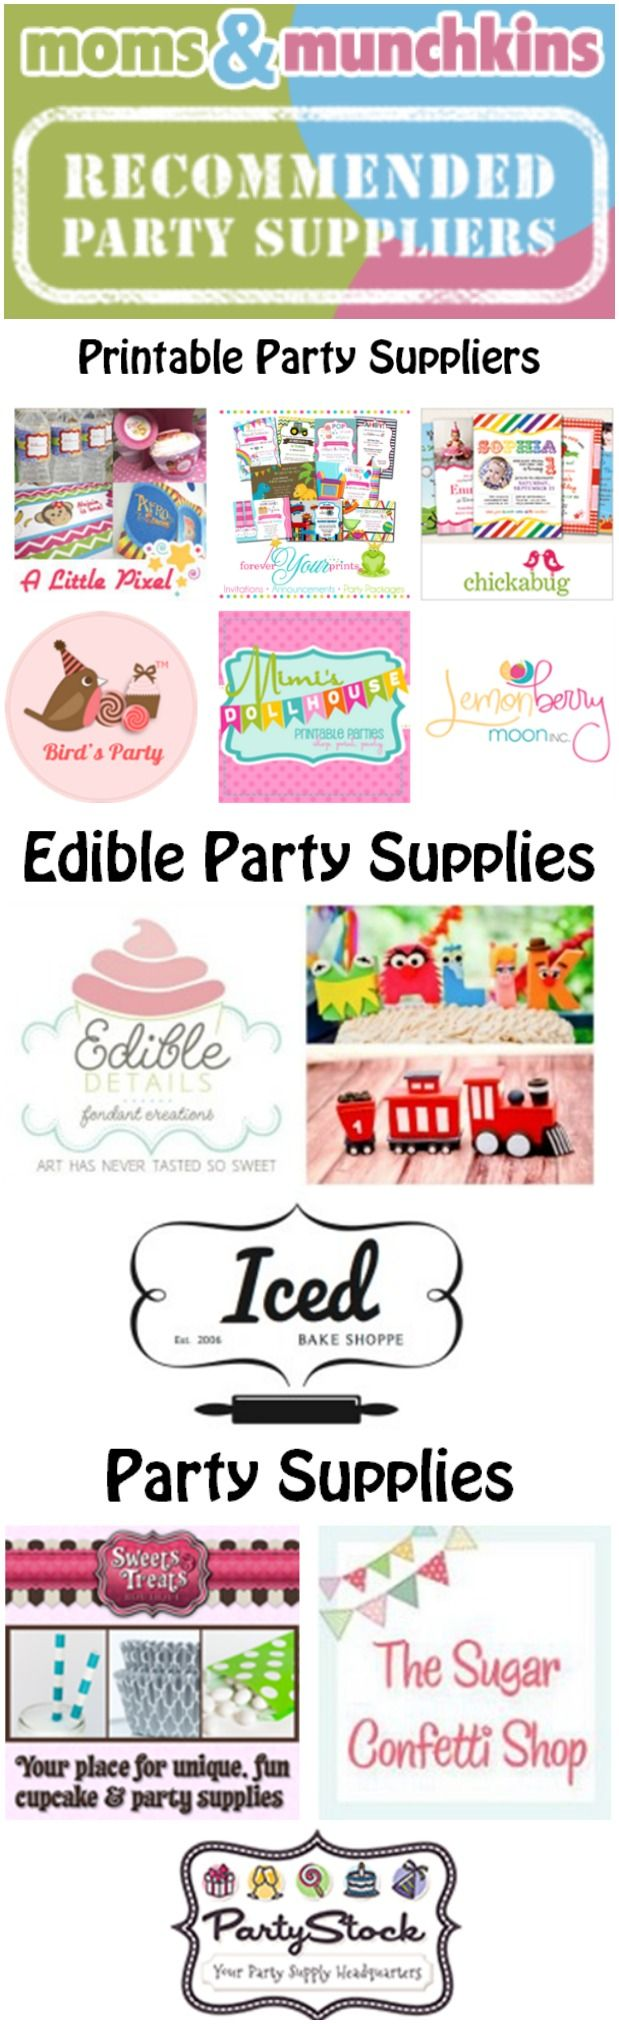 Recommended Party Suppliers #PartySupplies